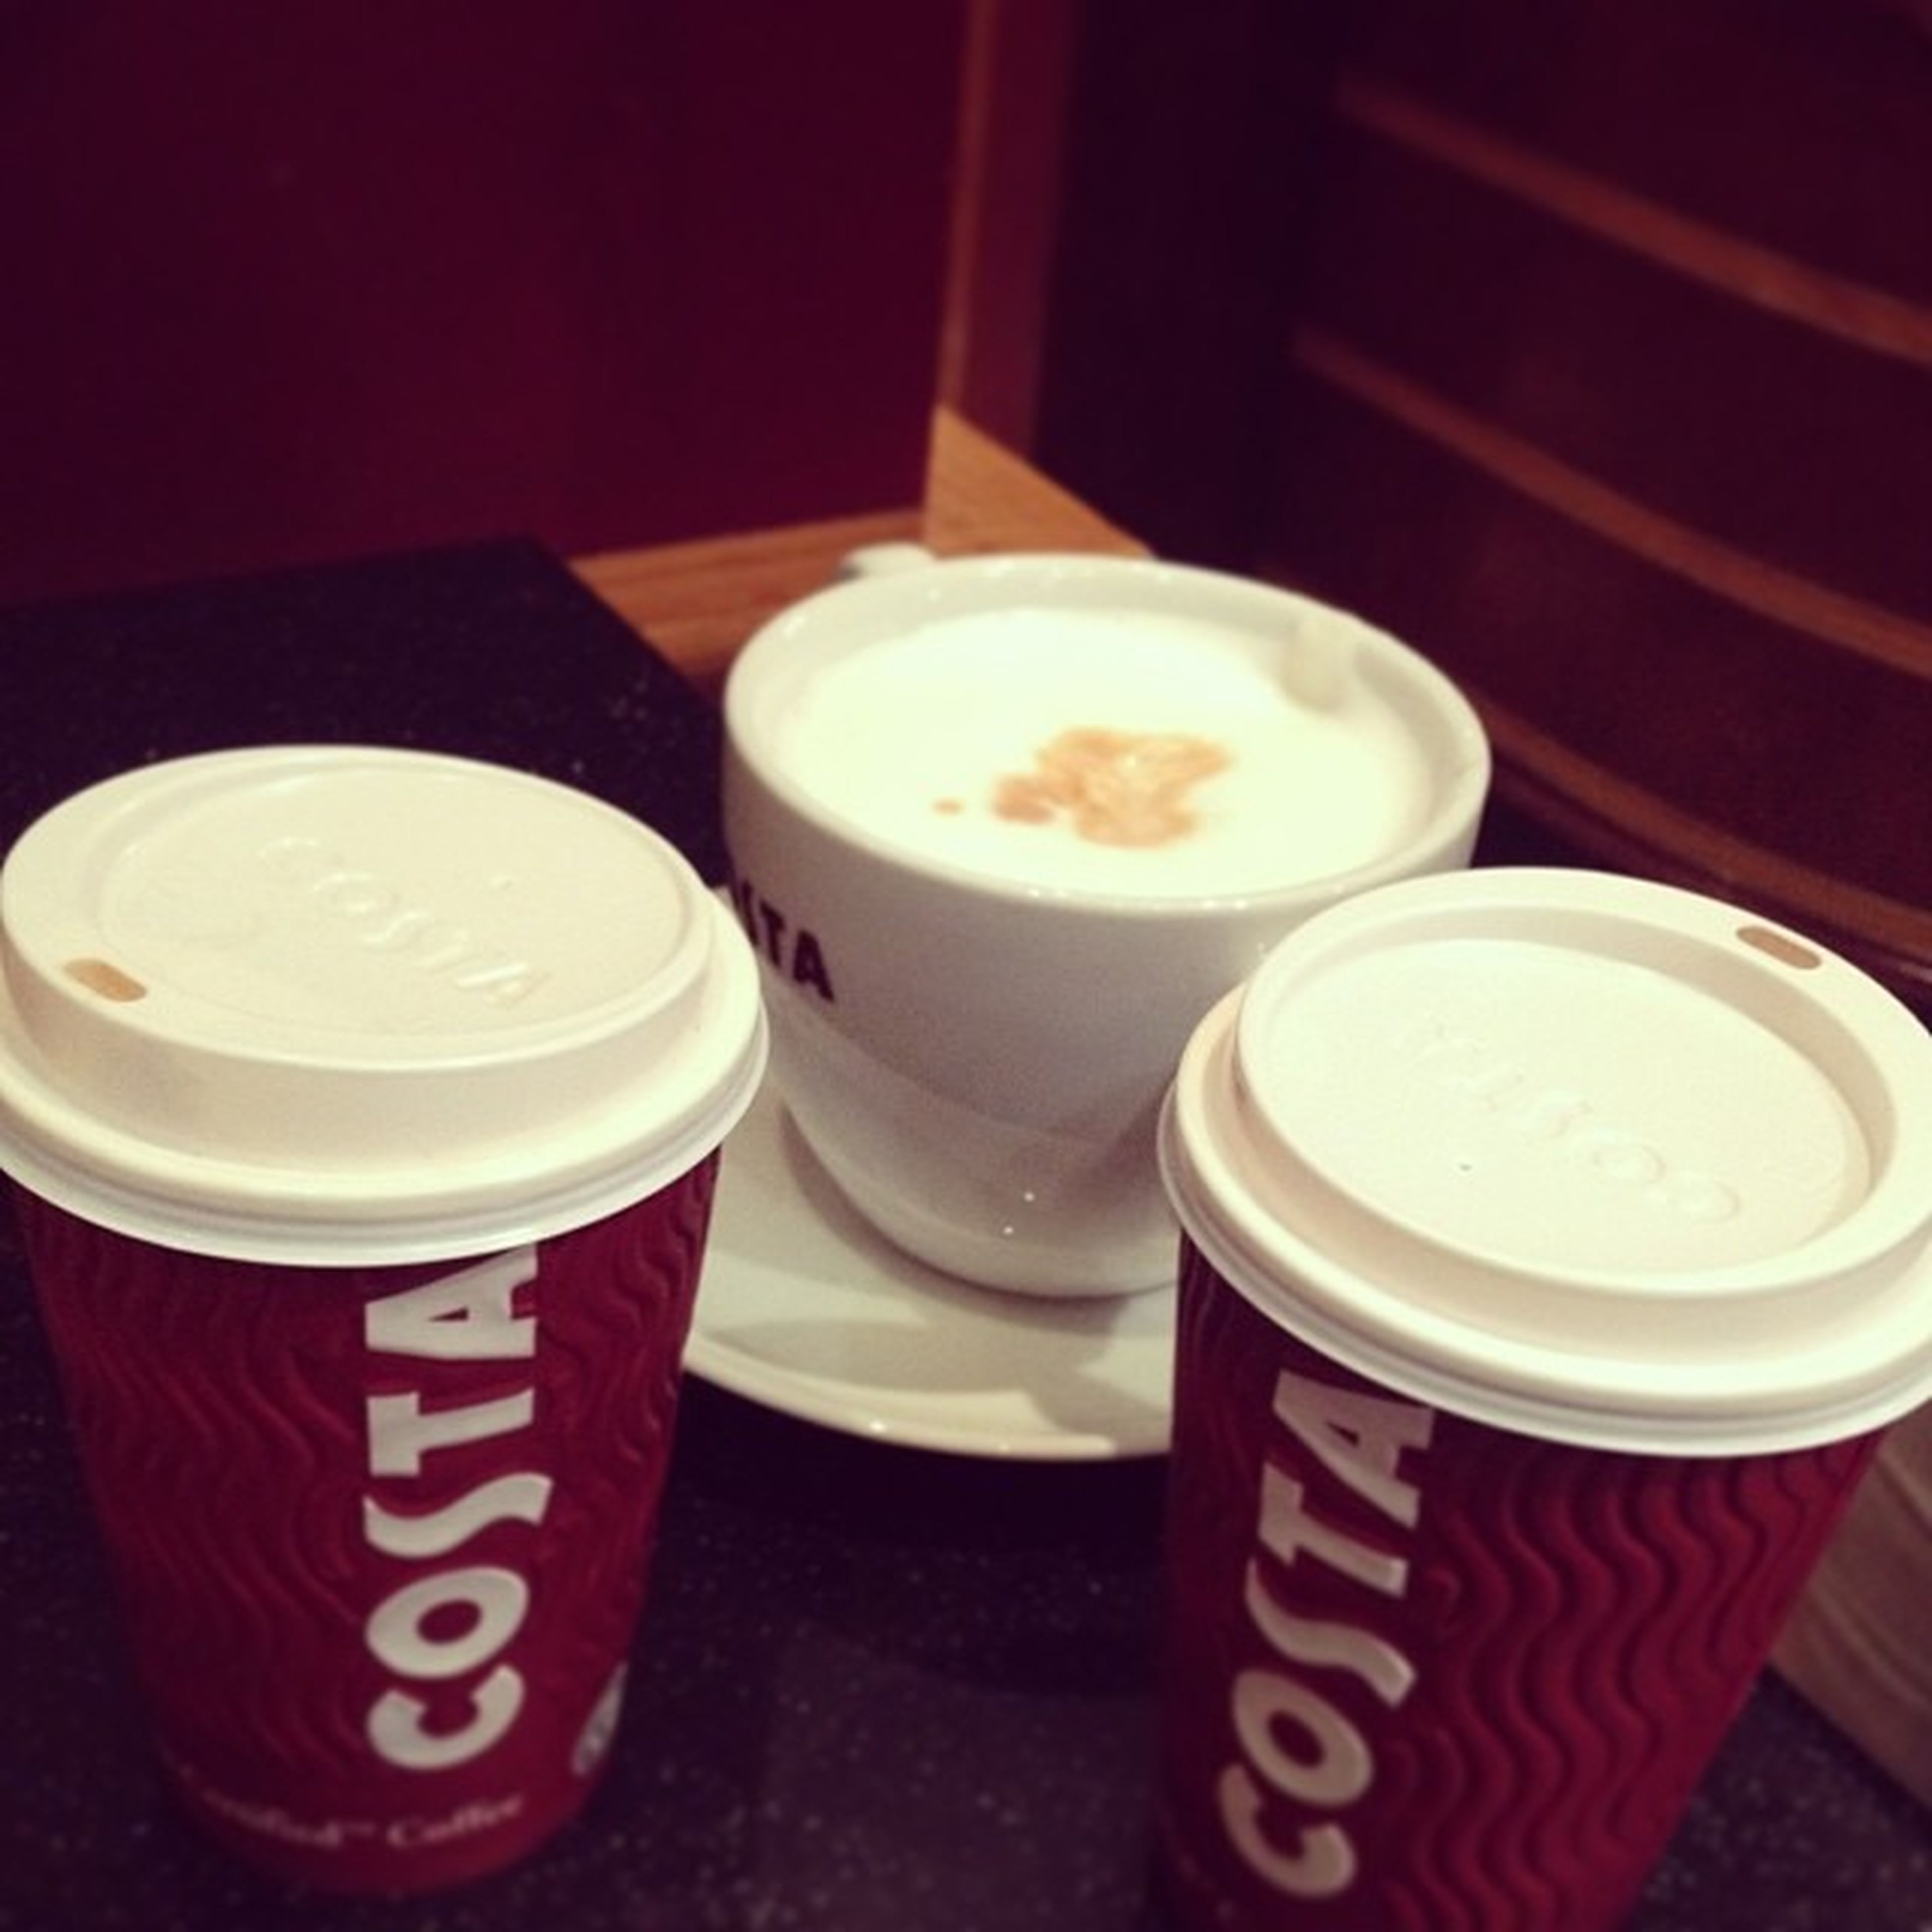 @ costa with guys 😍